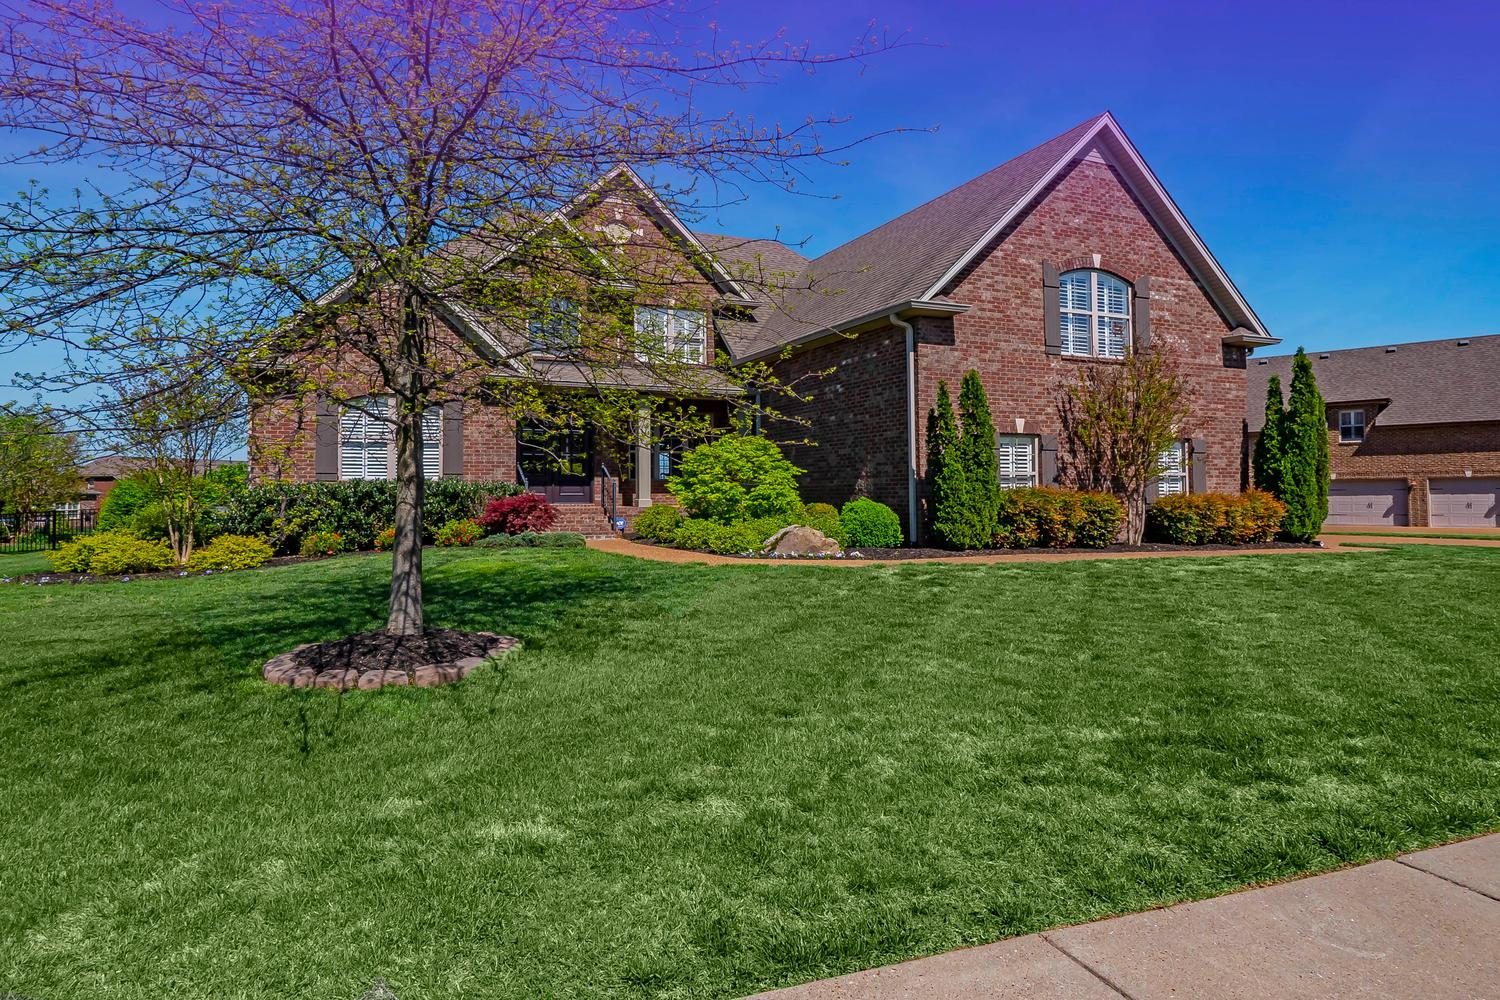 1499 Foxland Blvd, Gallatin in Sumner County County, TN 37066 Home for Sale